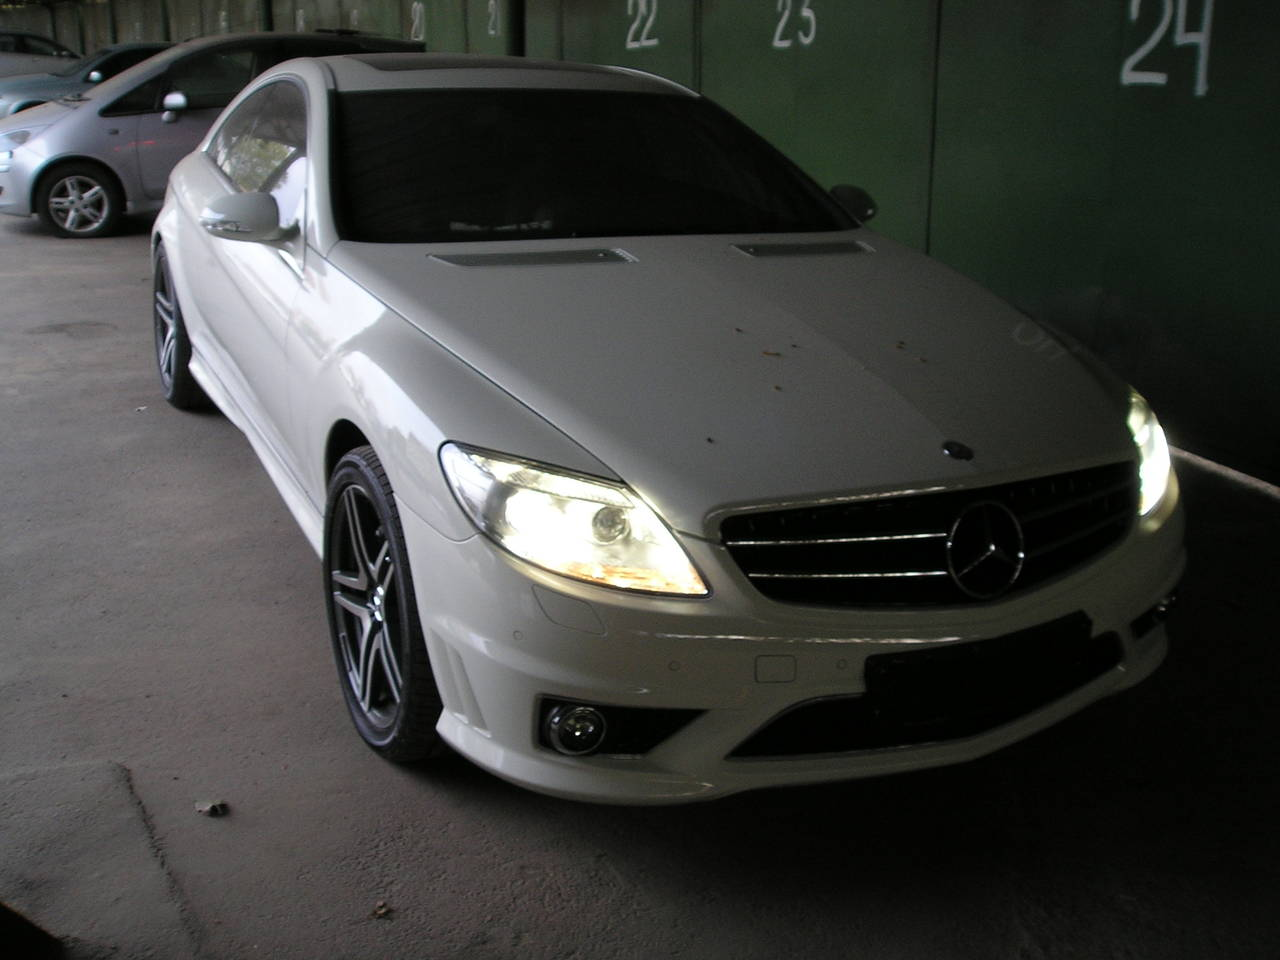 2008 mercedes benz cl class for sale 5 0 gasoline fr or for Mercedes benz 2008 for sale